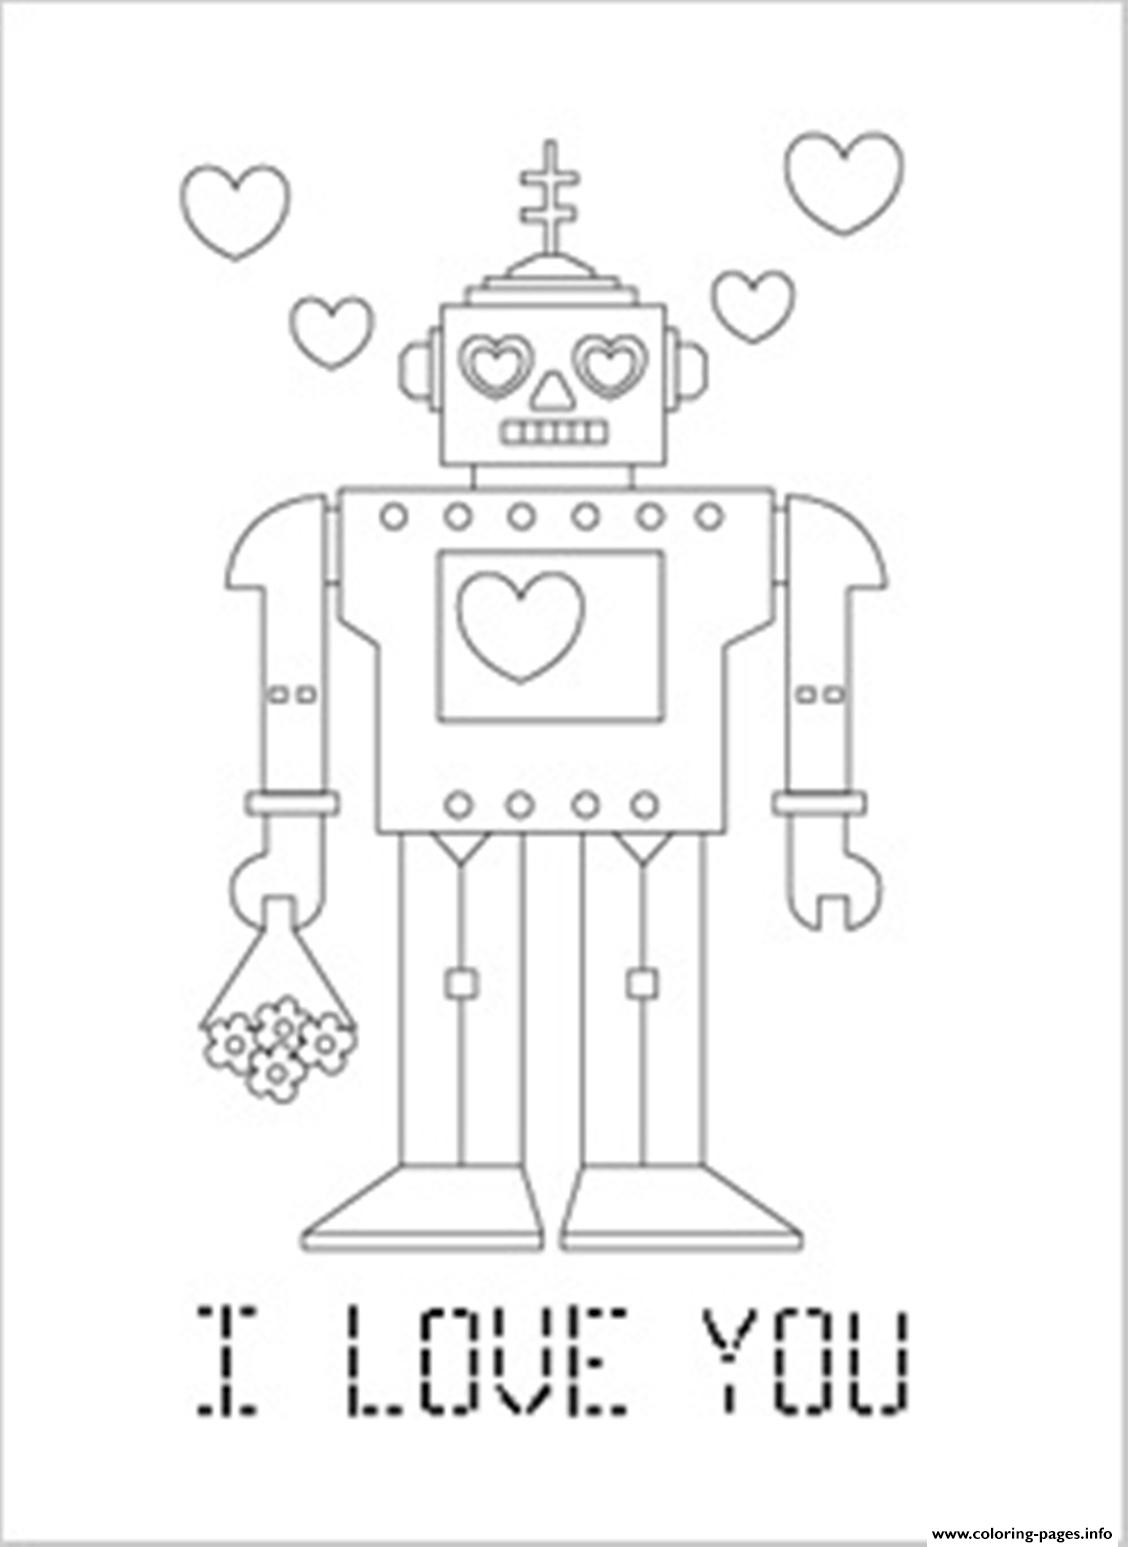 Robo I Love You Valentine E985 coloring pages